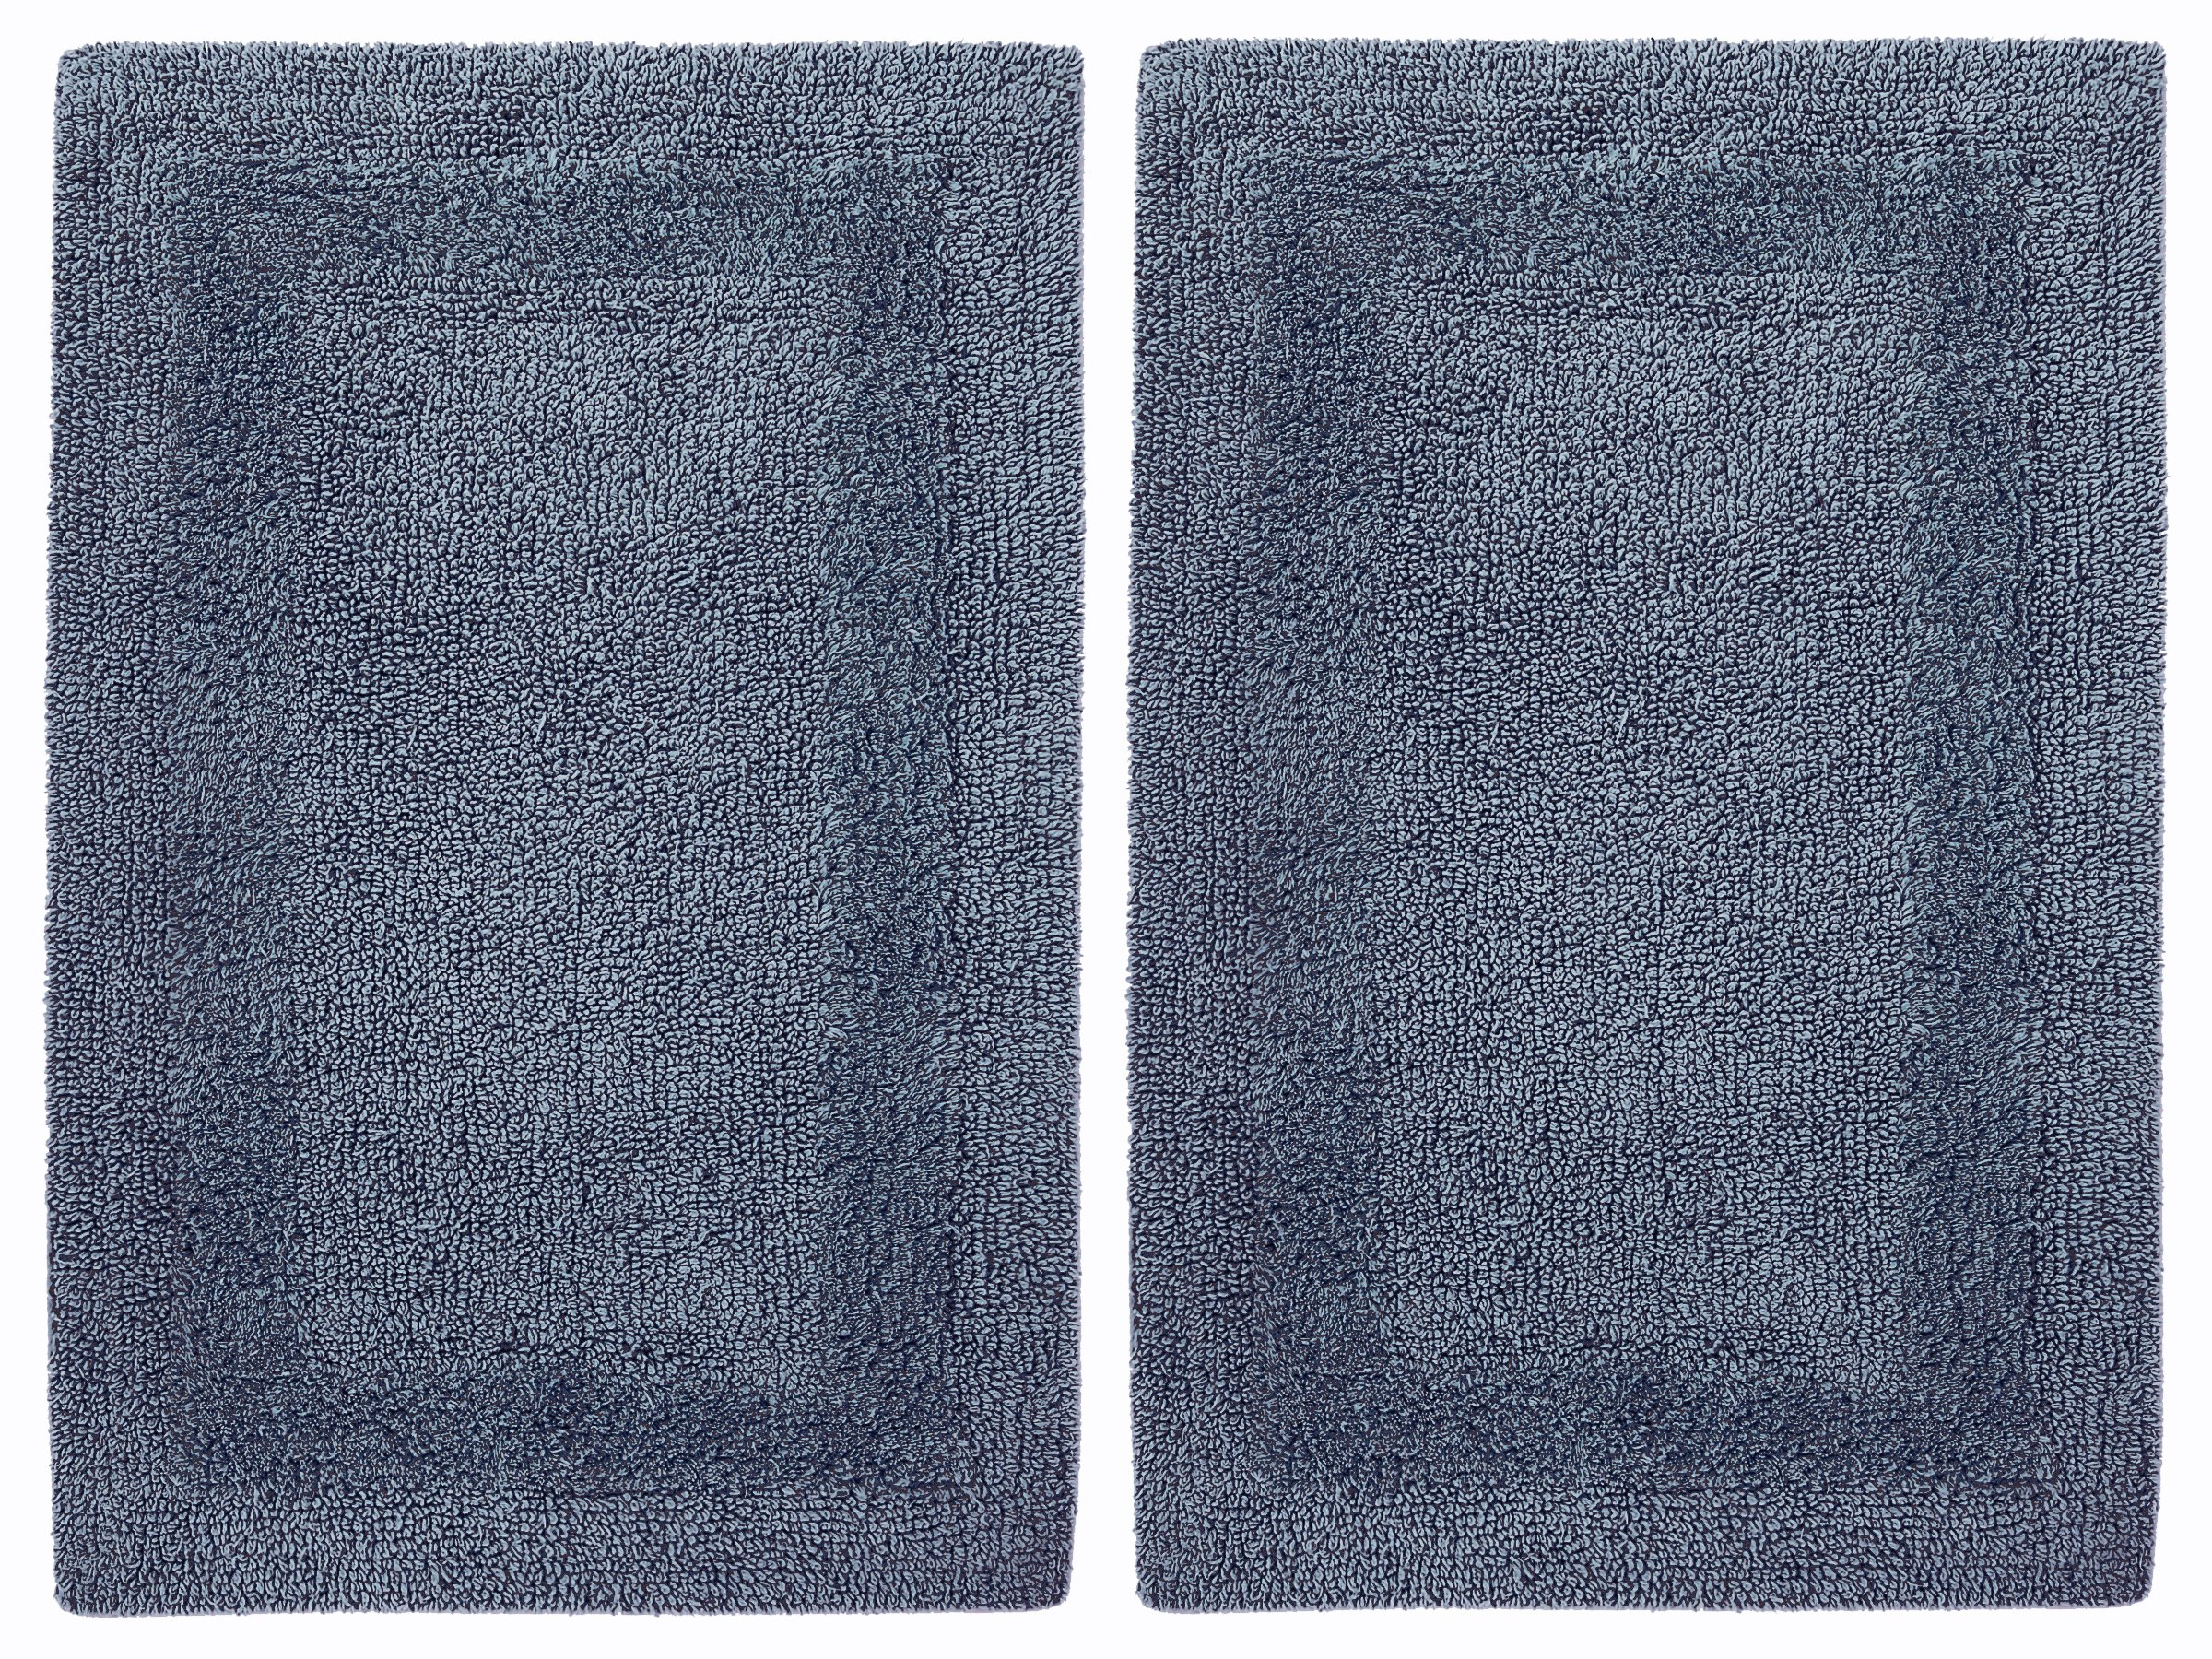 Cotton Craft 2 Piece Reversible Step Out Bath Mat Rug Set 17x24 Azure Blue, 100% Pure Cotton, Super Soft, Plush & Absorbent, Hand Tufted Heavy Weight Construction, Full Reversible, Rug Pad Recommended